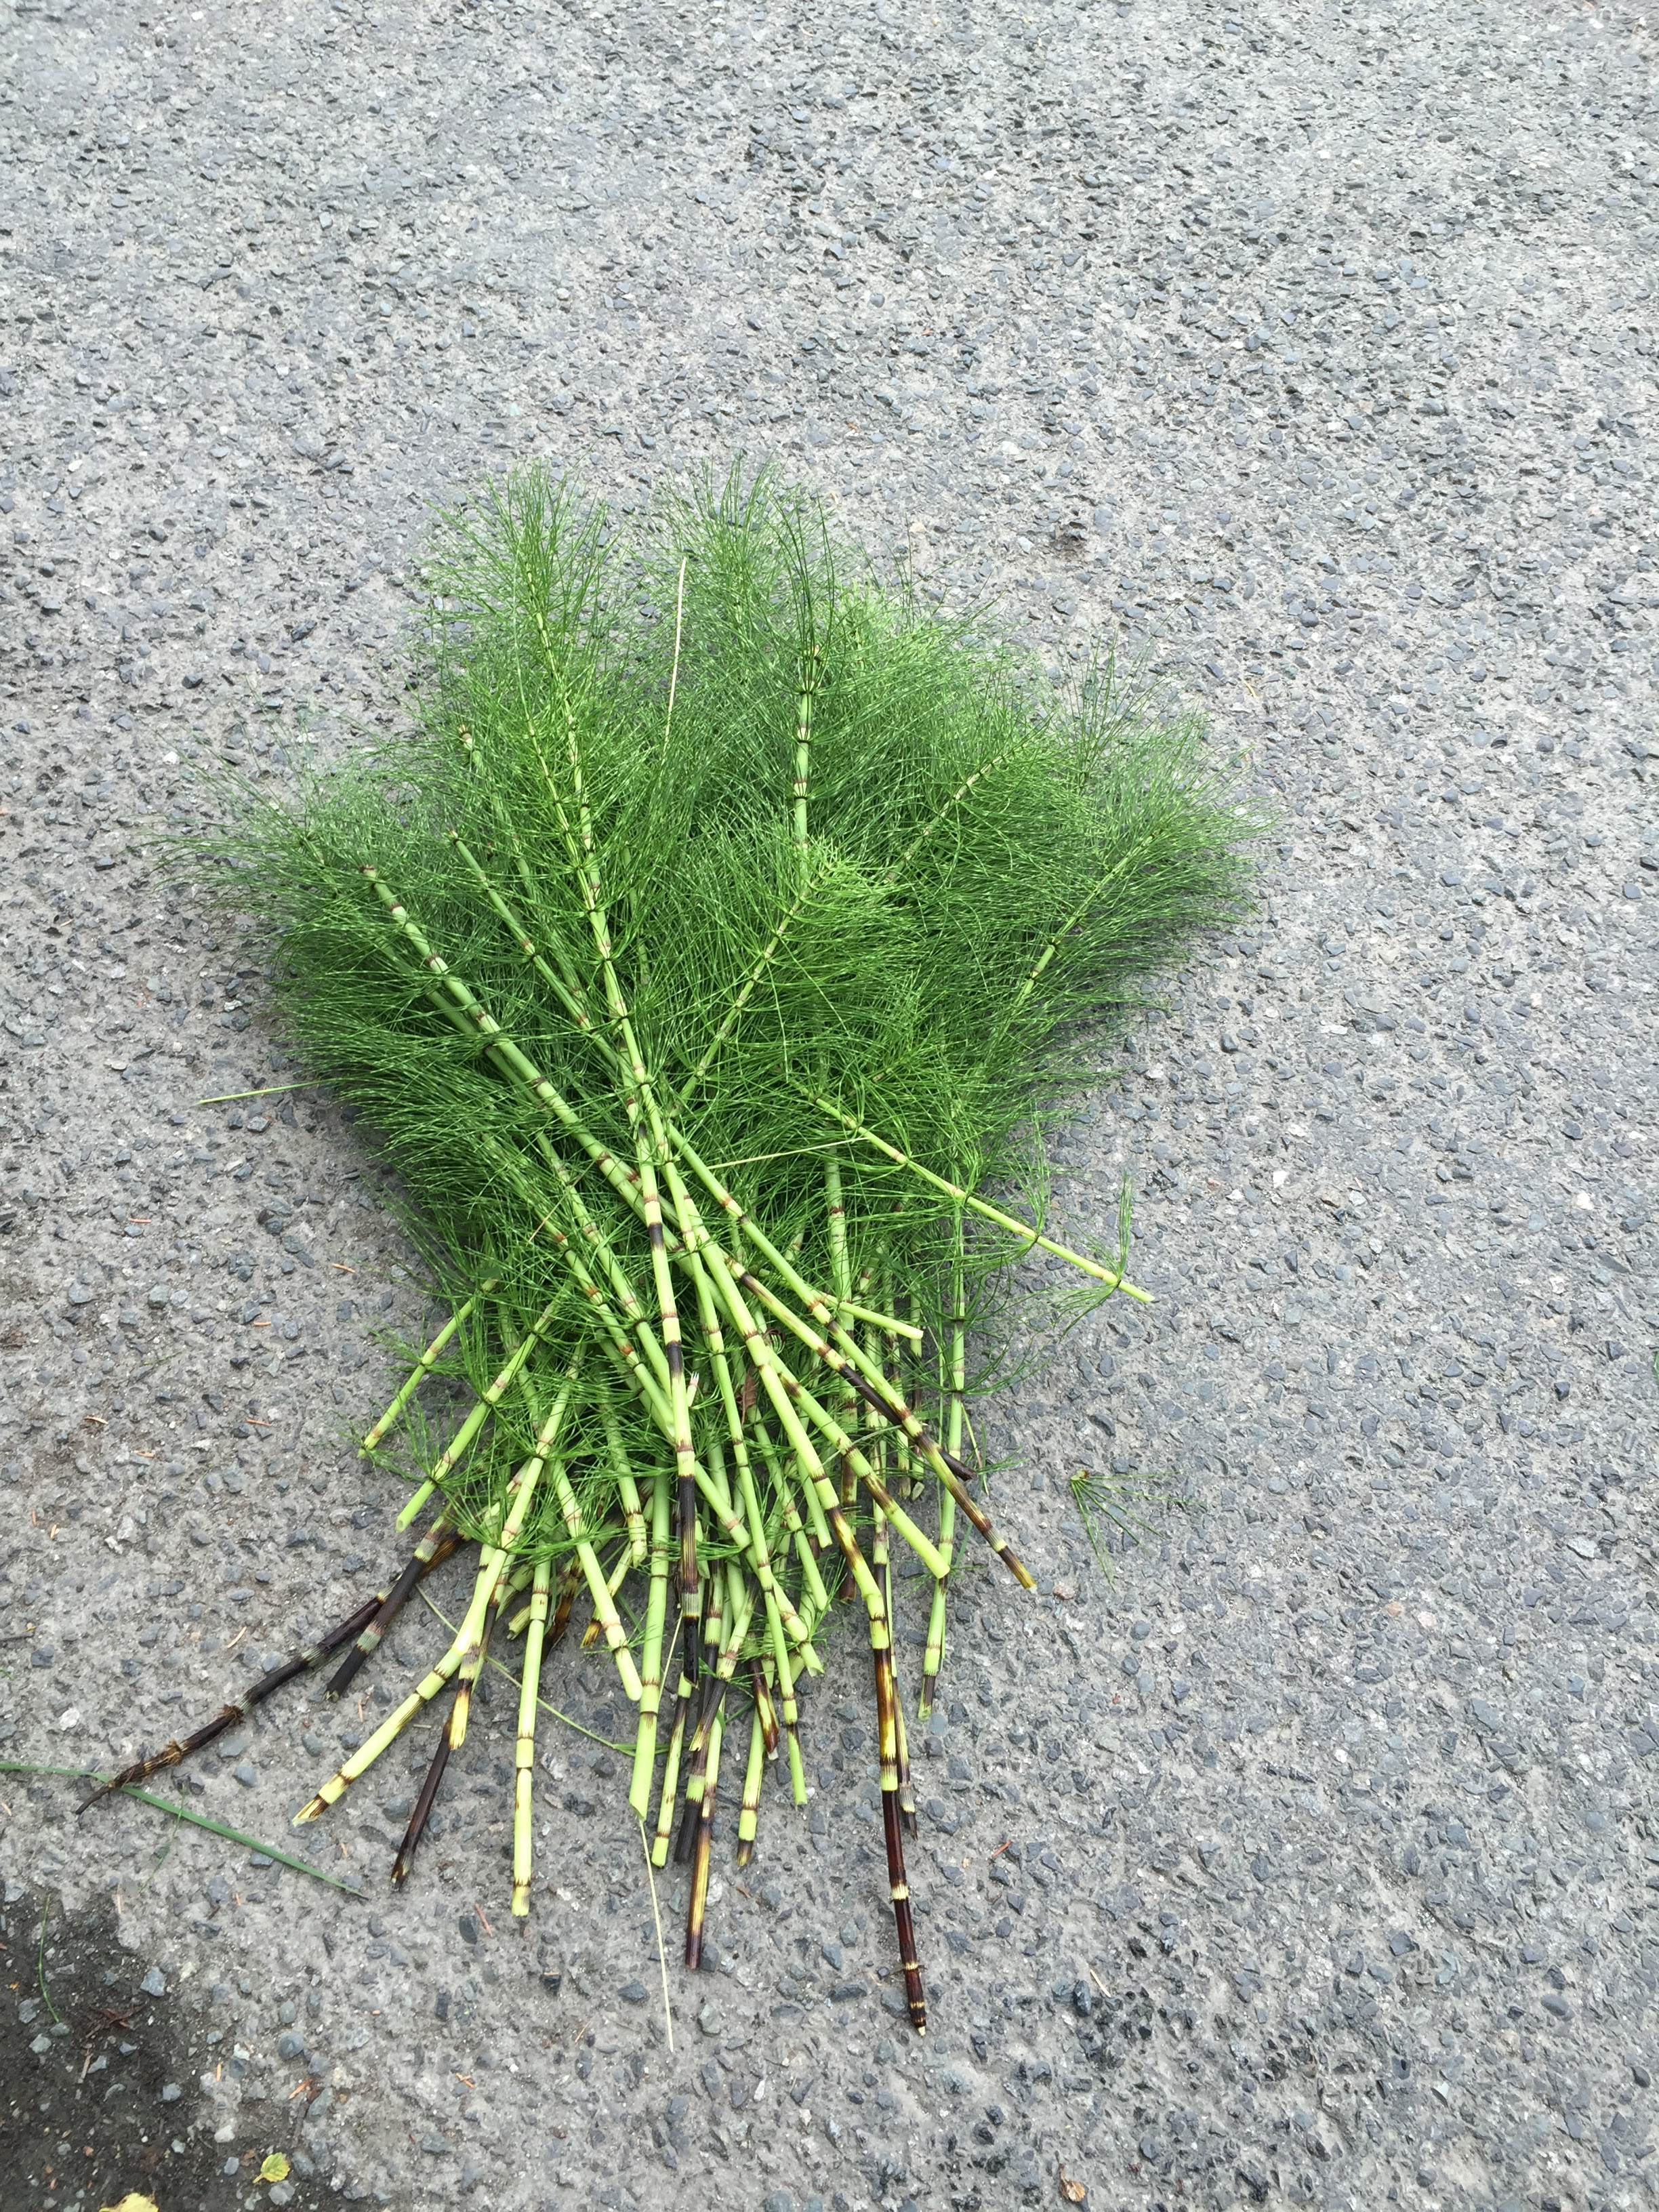 Horsetail, which is an invasive weed found all over the island.